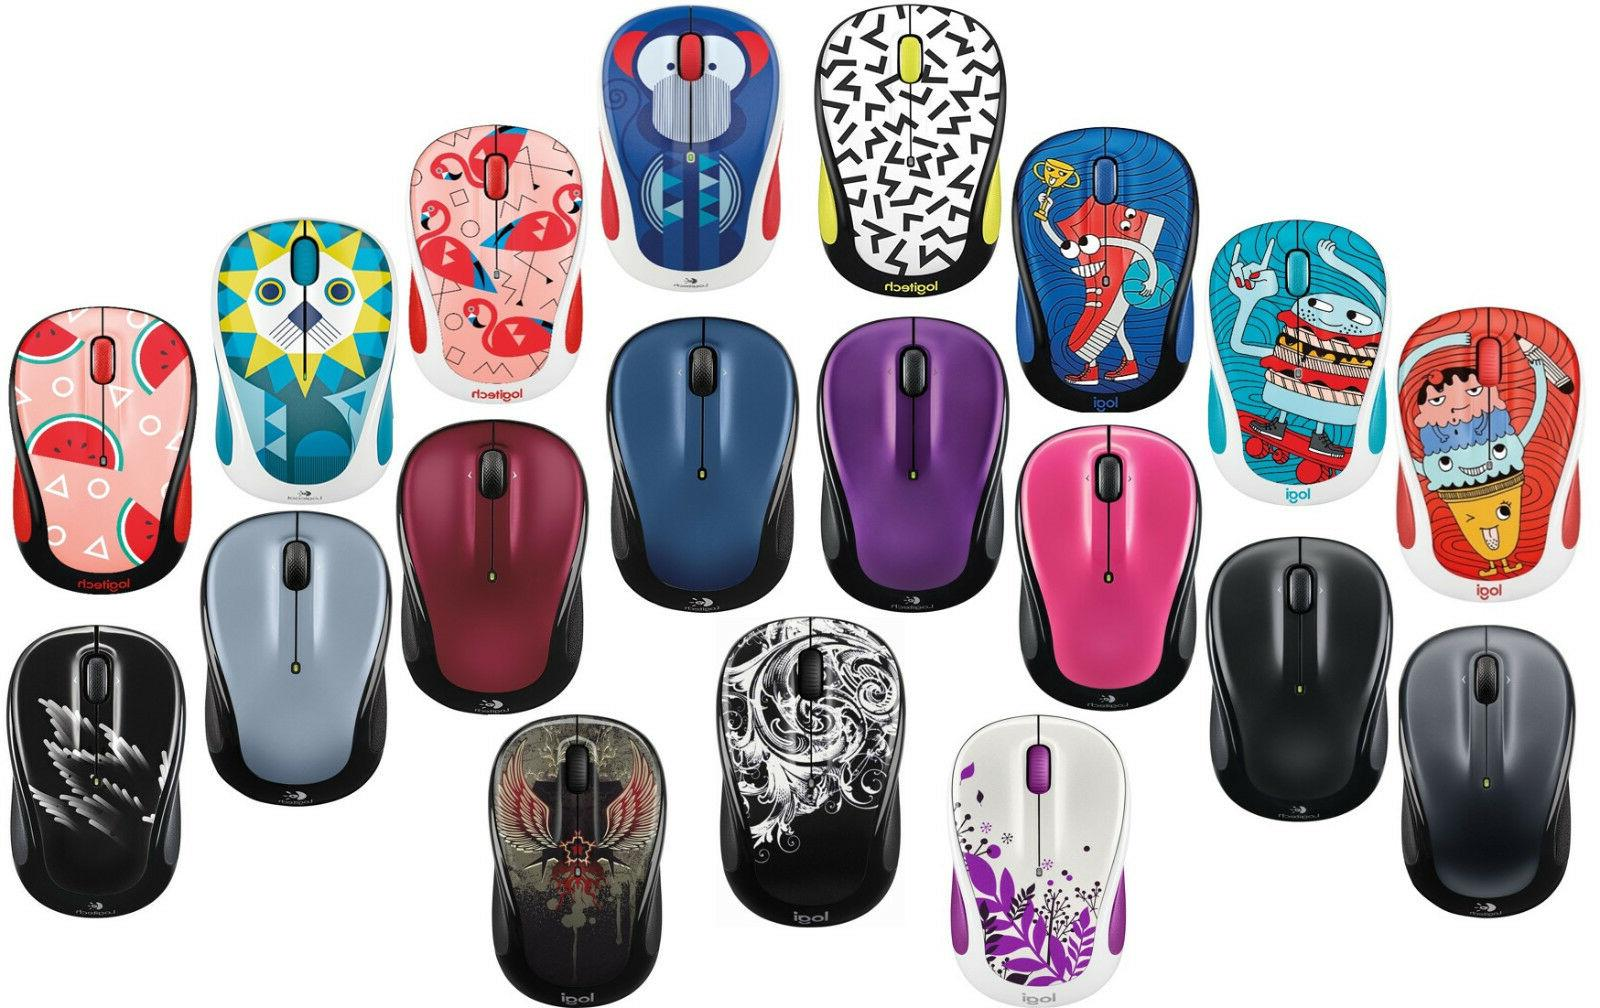 Logitech M325 and M325c Wireless Mouse in Multi-colors